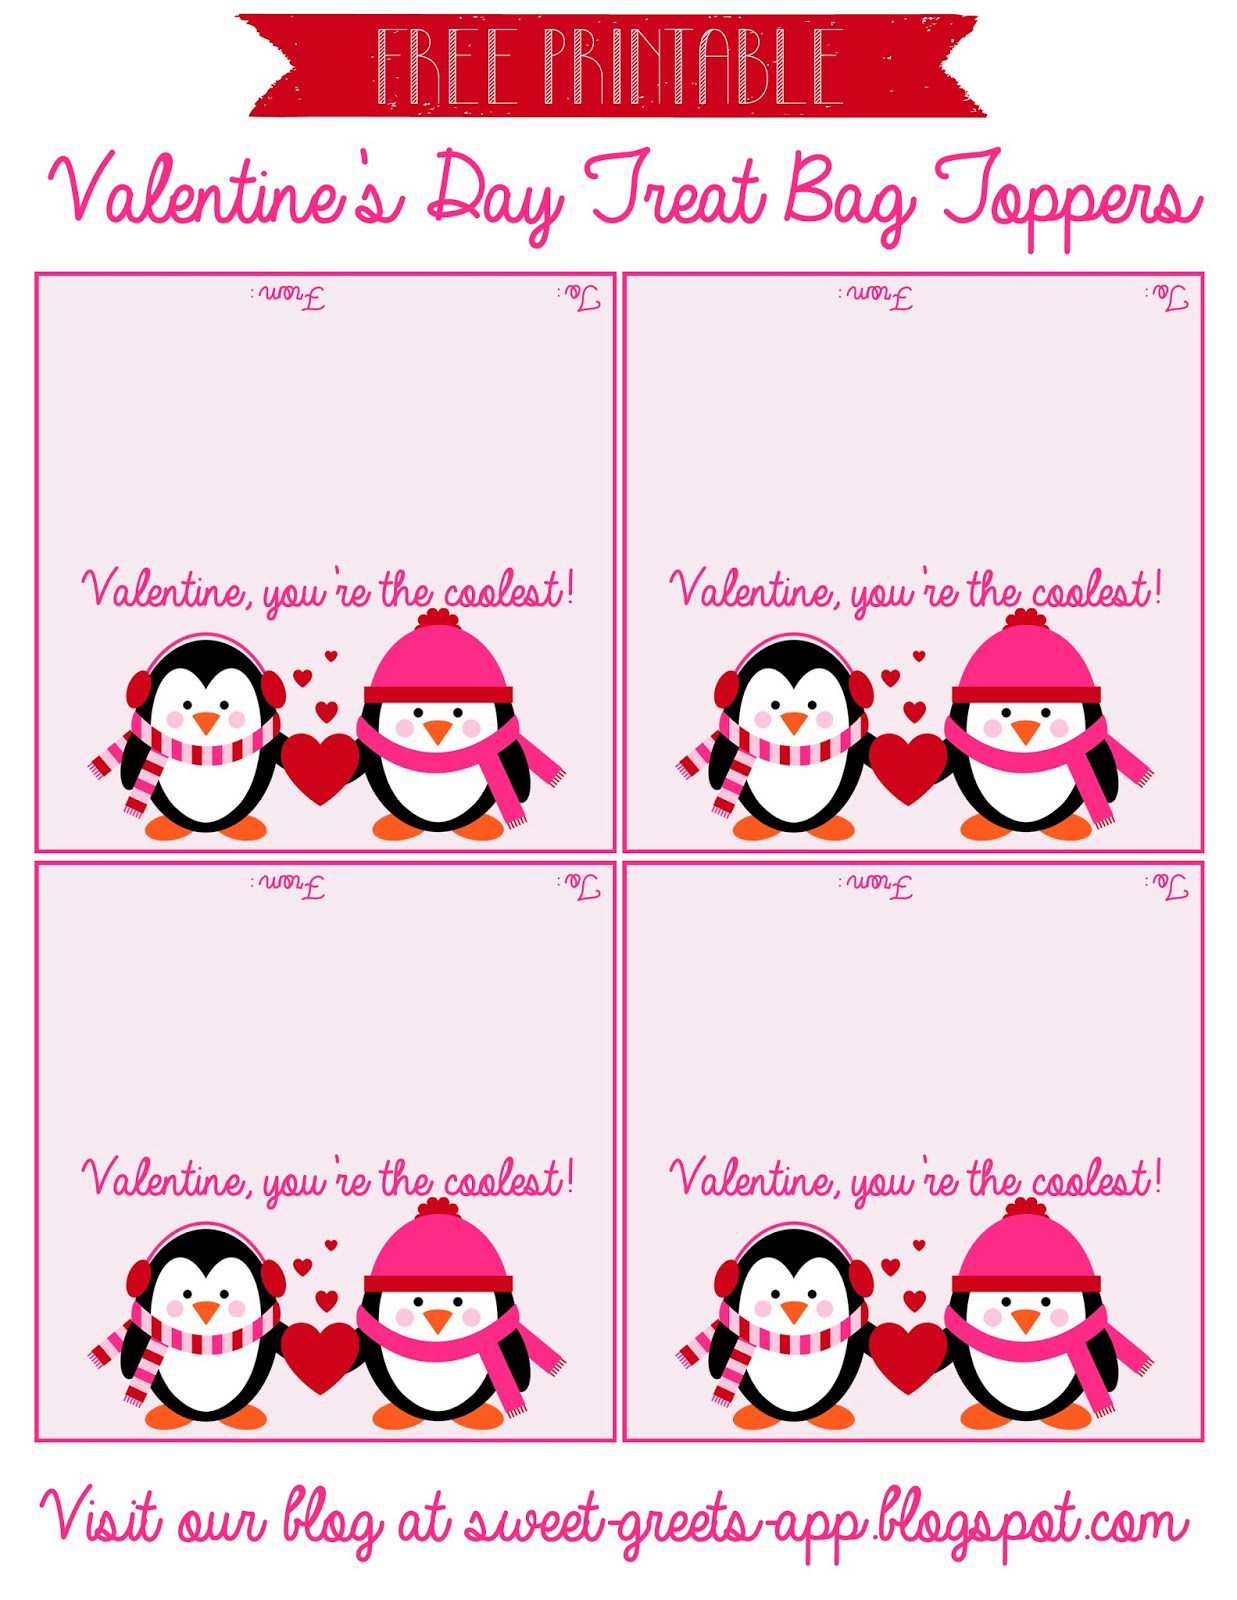 photo relating to Free Printable Bag Toppers identify Adorable Nothings: No cost Printable Valentines Working day Deal with Bag Toppers